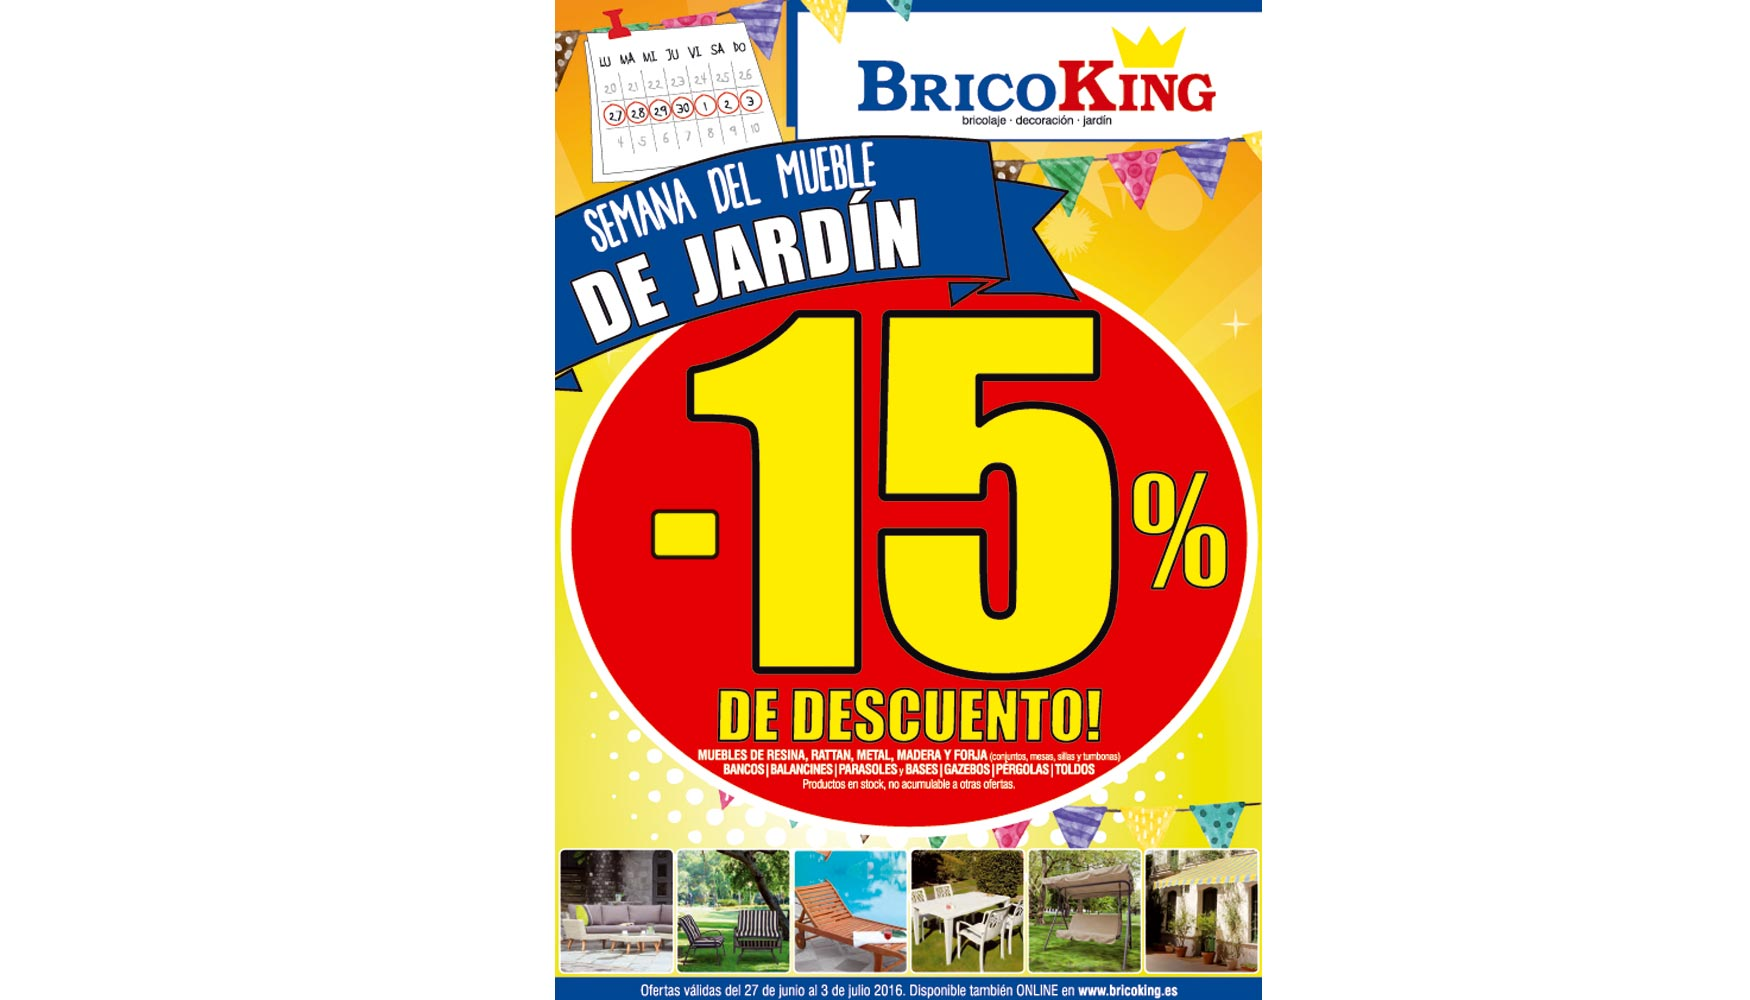 Bricoking celebra la semana del mueble de jard n ferreter a for Piscinas bricoking